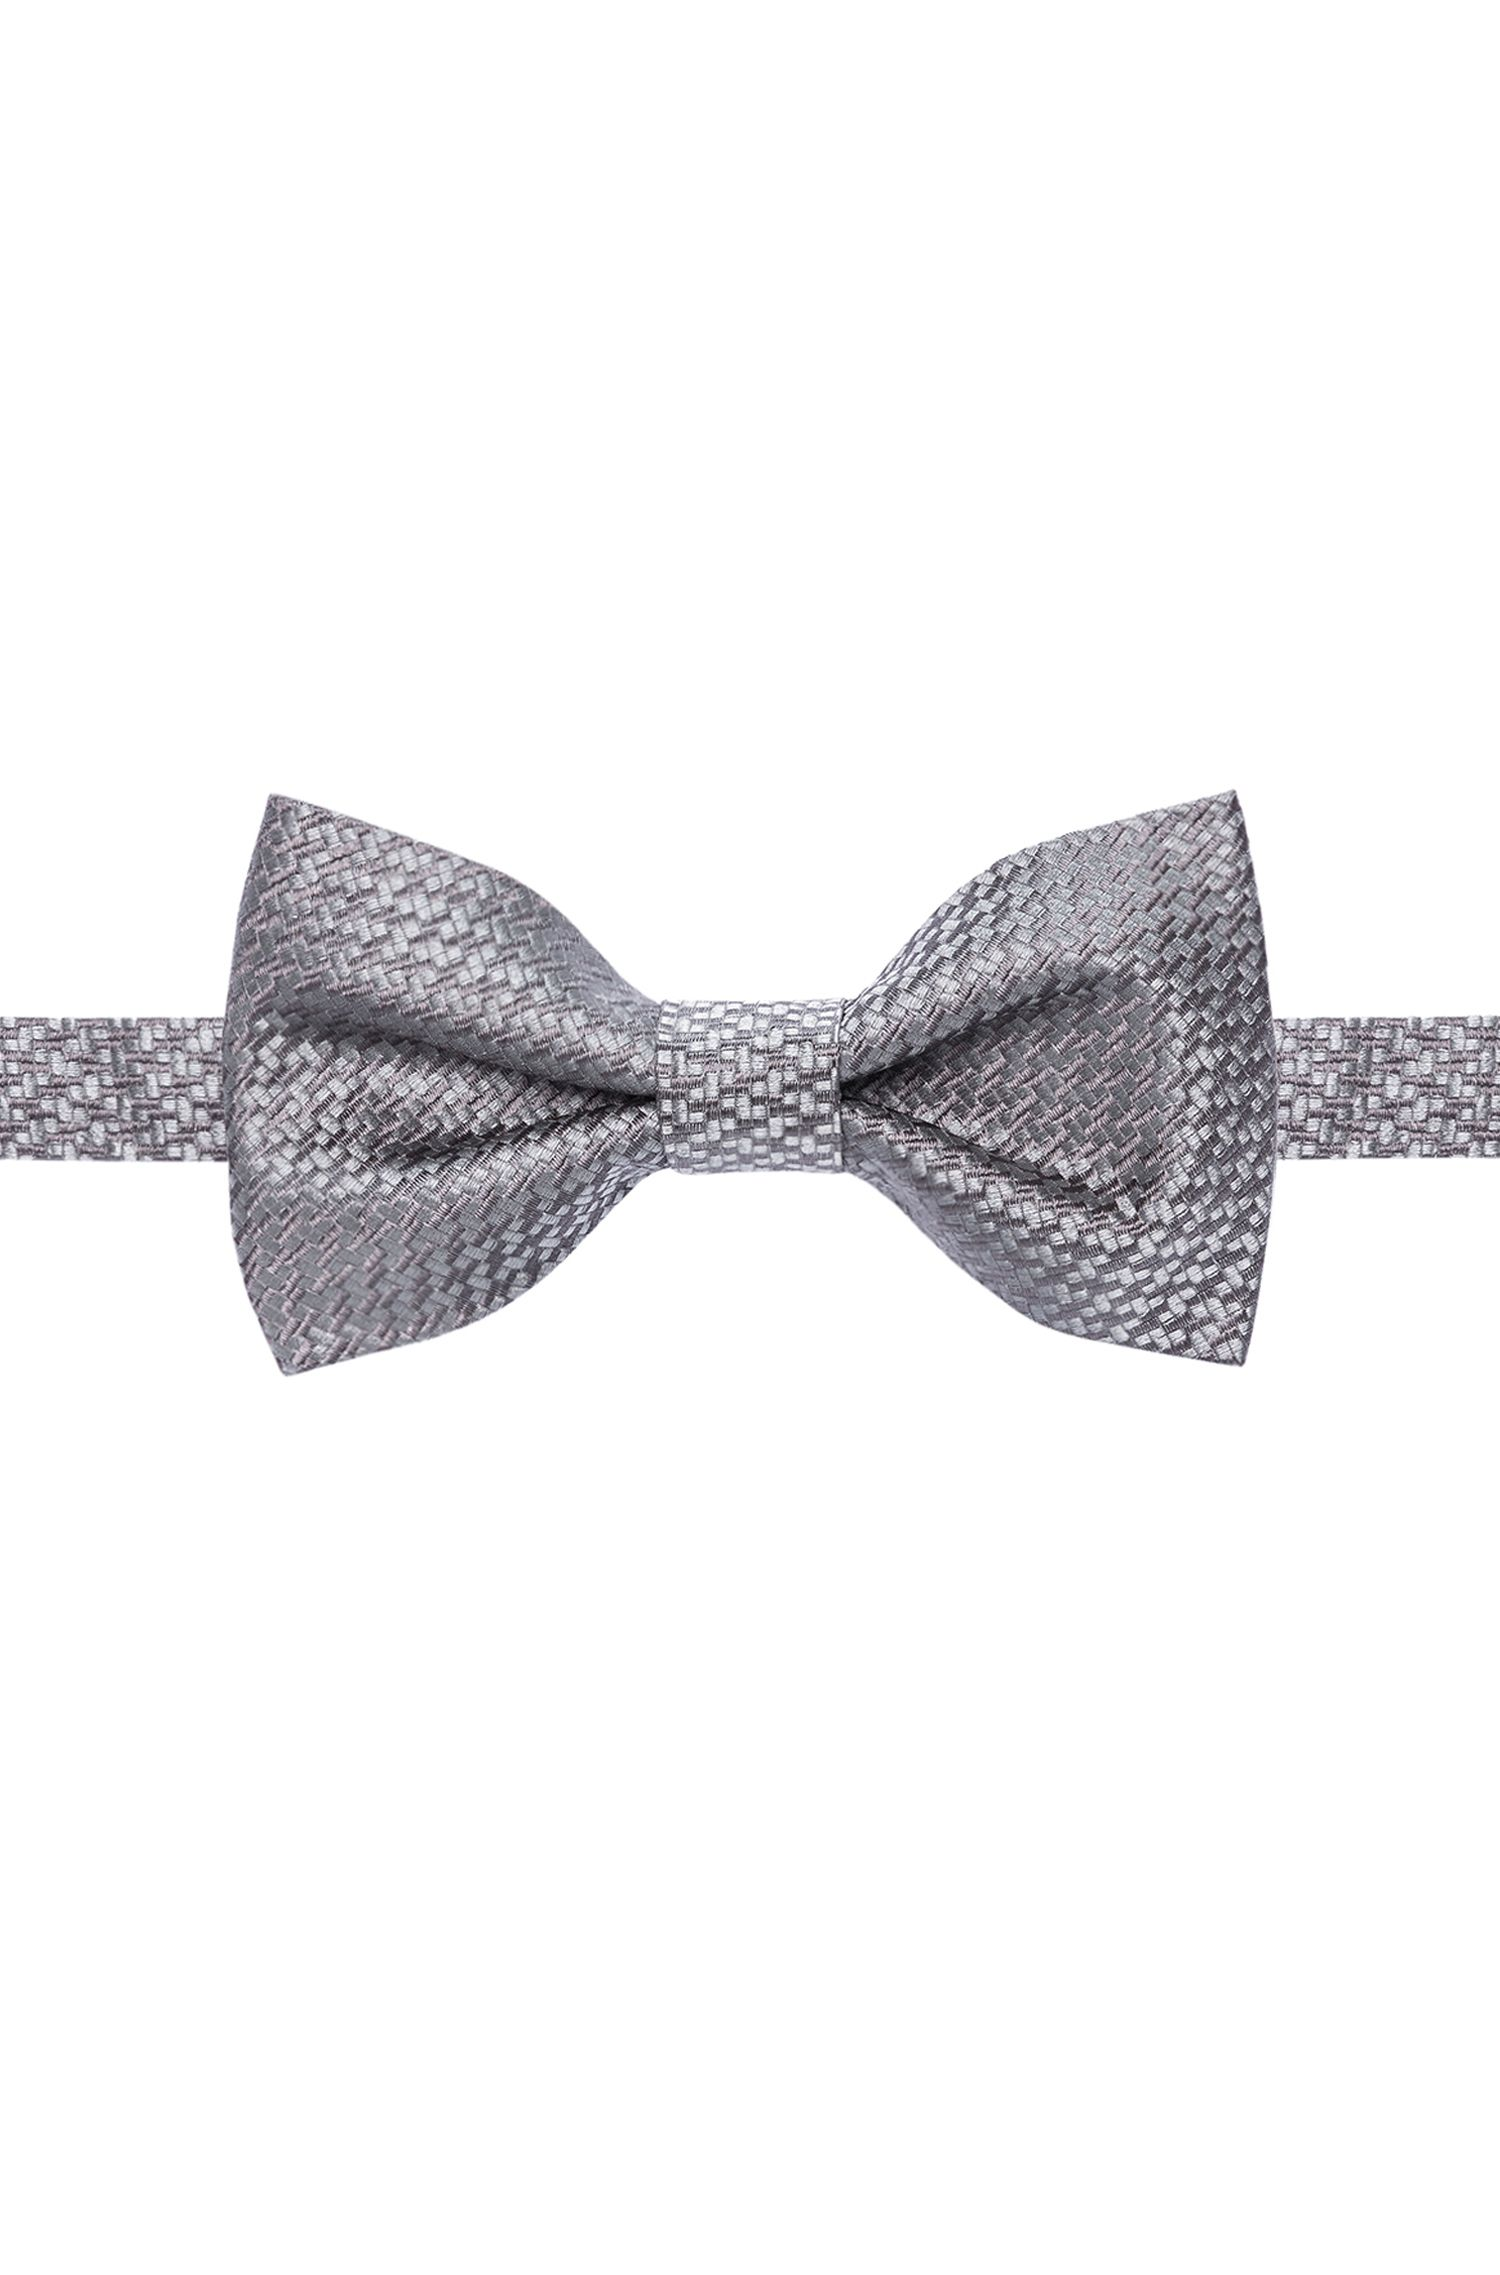 Basketweave Italian Silk Bow Tie